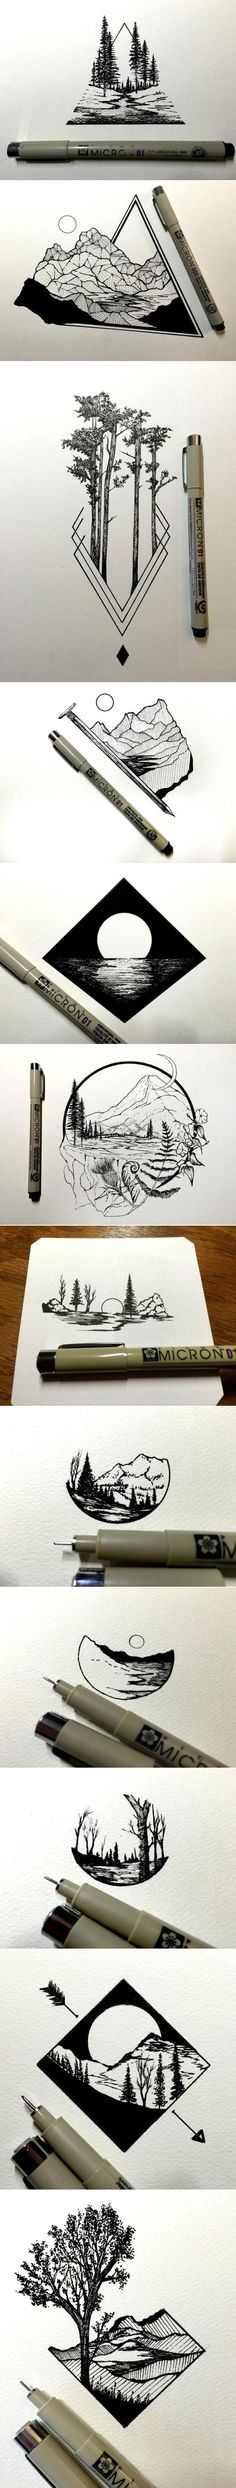 Tatto Ideas 2017 Daily Drawings by Derek Myers Fubiz Media a grouped images picture Kunst Tattoos, Body Art Tattoos, Tatoos, Stylo Art, Daily Drawing, Pen Art, Cool Drawings, Simple Drawings, Dragon Drawings